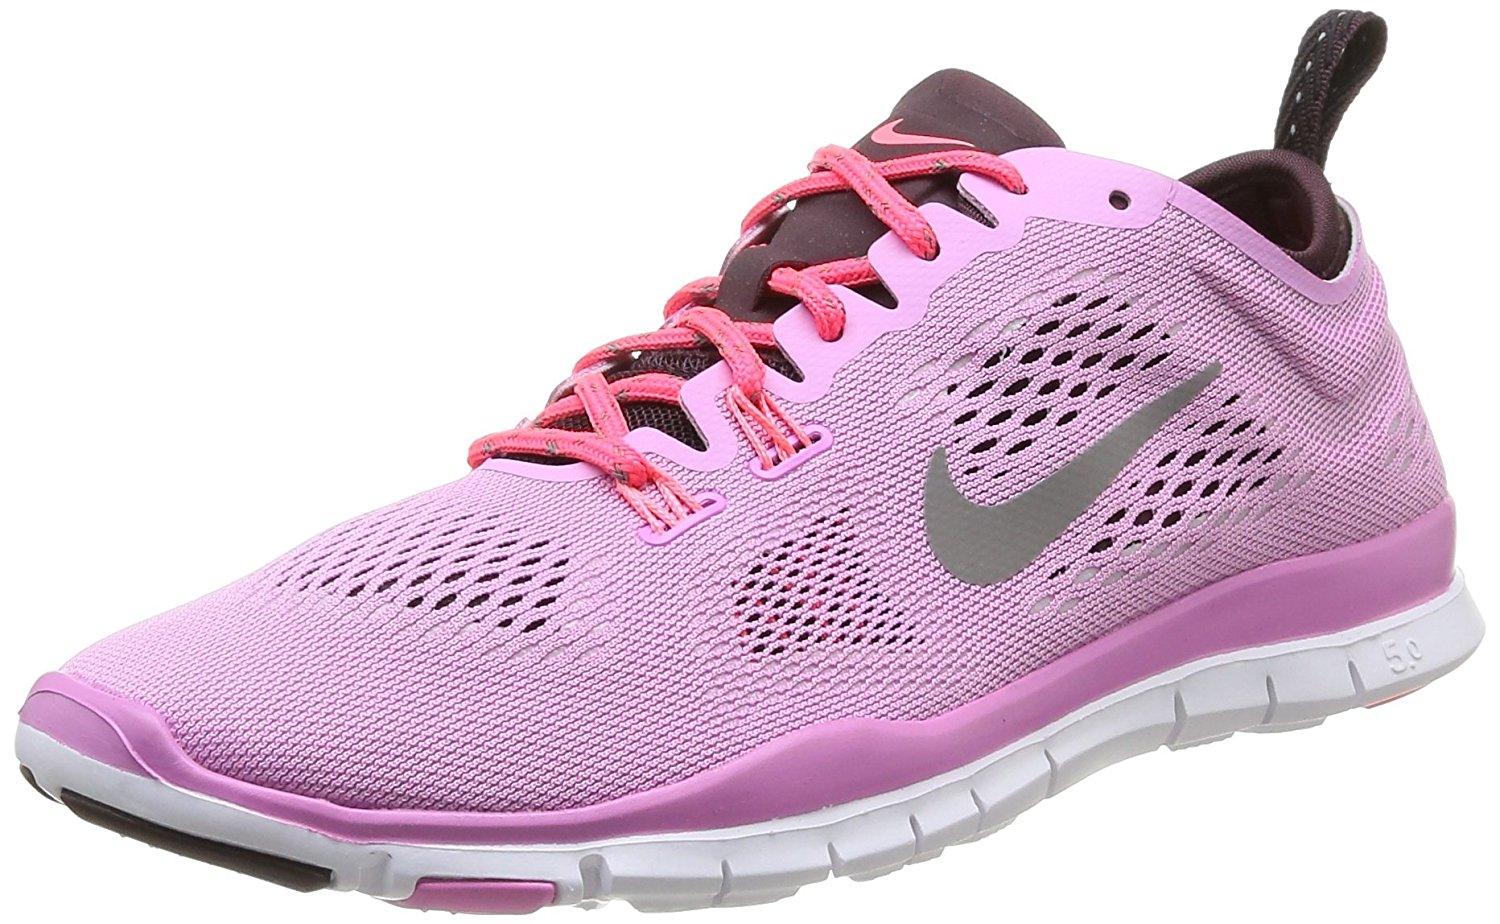 brand new c68d7 60edc Get Quotations · Nike Women s Free 5.0 TR Fit 4 Cross Trainer